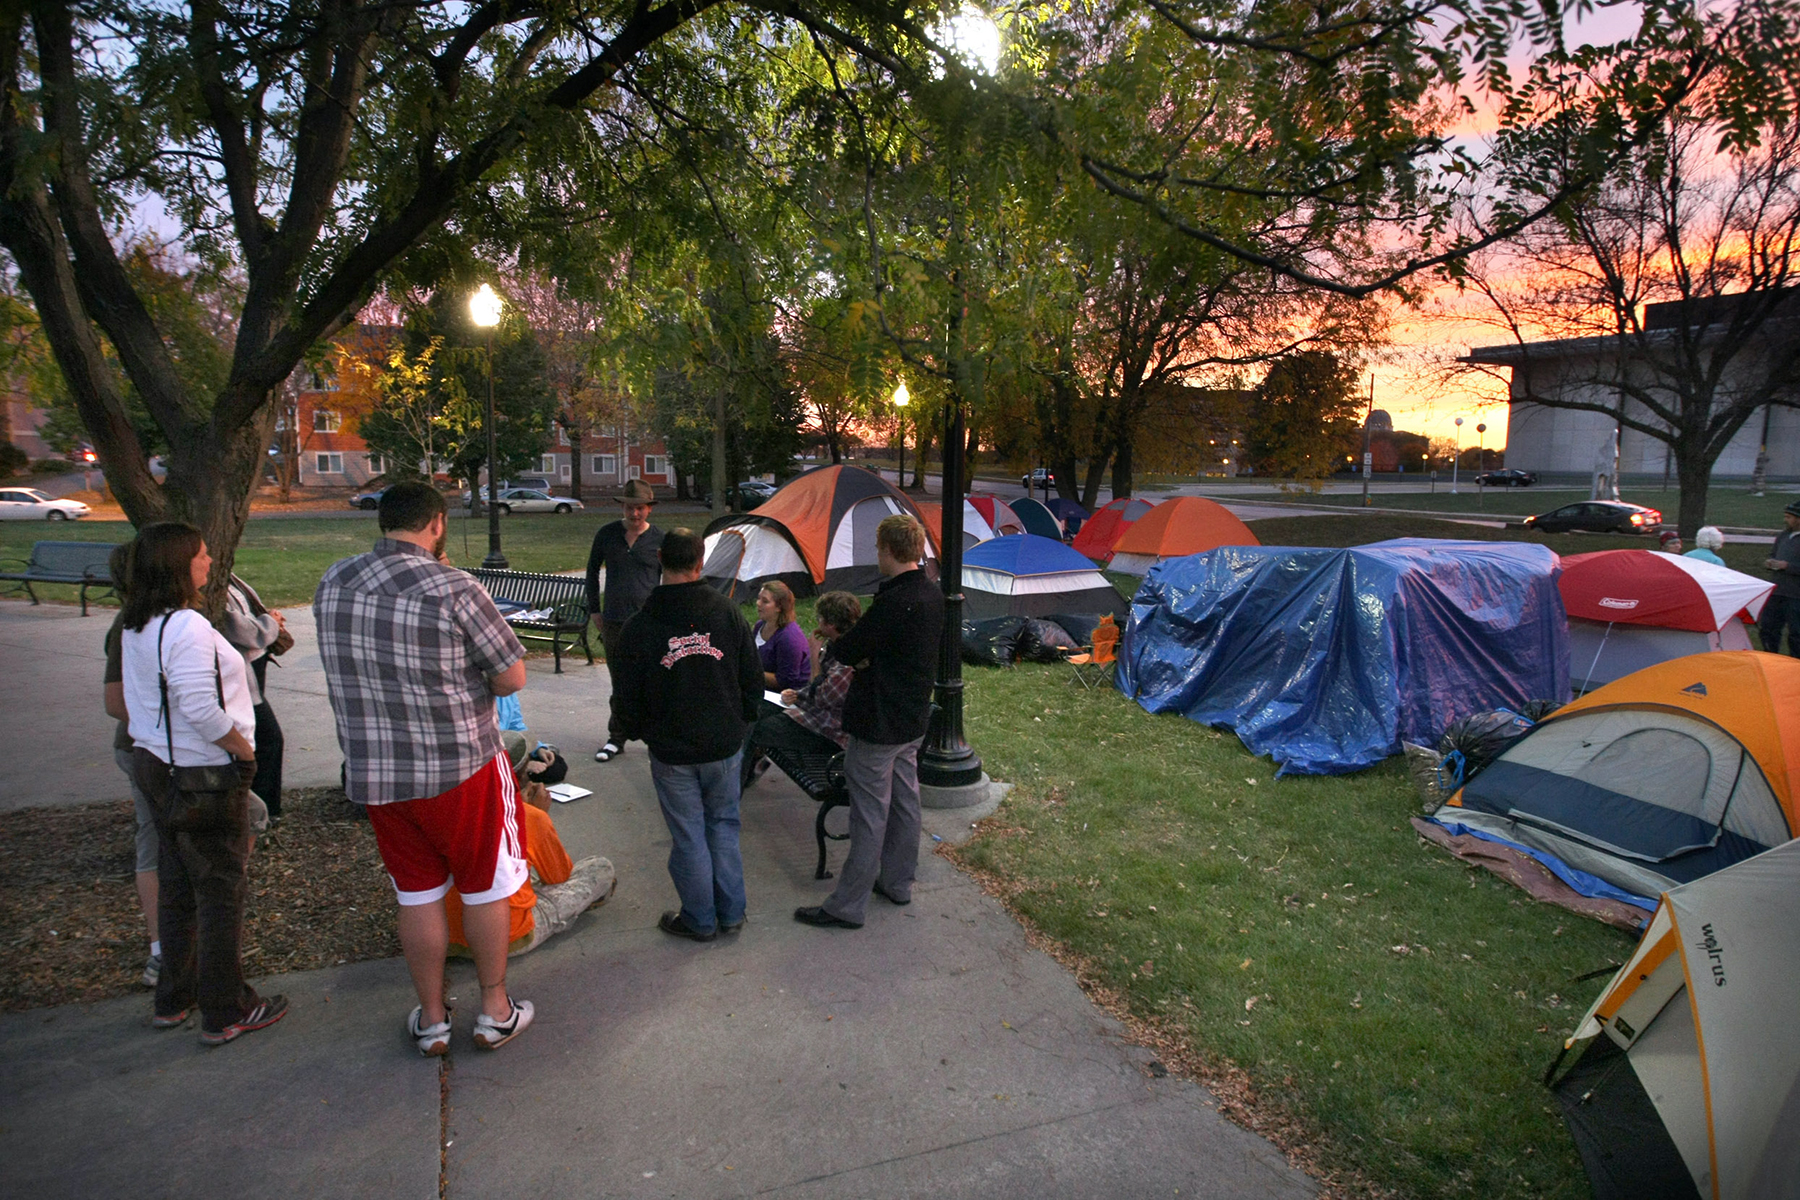 Small groups gather at the Occupy Des Moines encampment at Stewart Square east of the capitol on Thursday, Oct. 20, 2011 in Des Moines. Protesters from across the country will be invited to help occupy all the presidential campaign headquarters in Iowa. Under a plan approved at Occupy Iowa's meeting Monday, Oct. 31, 2011, in Des Moines, the protesters would go in the headquarters to share their message. If they aren't let in, the protesters would try to shut down the headquarters by sitting in front of their doors. Occupy Iowa is an offshoot of the Occupy Wall Street movement. (AP Photo/The Des Moines Register, Bill Neibergall) MANDATORY CREDIT